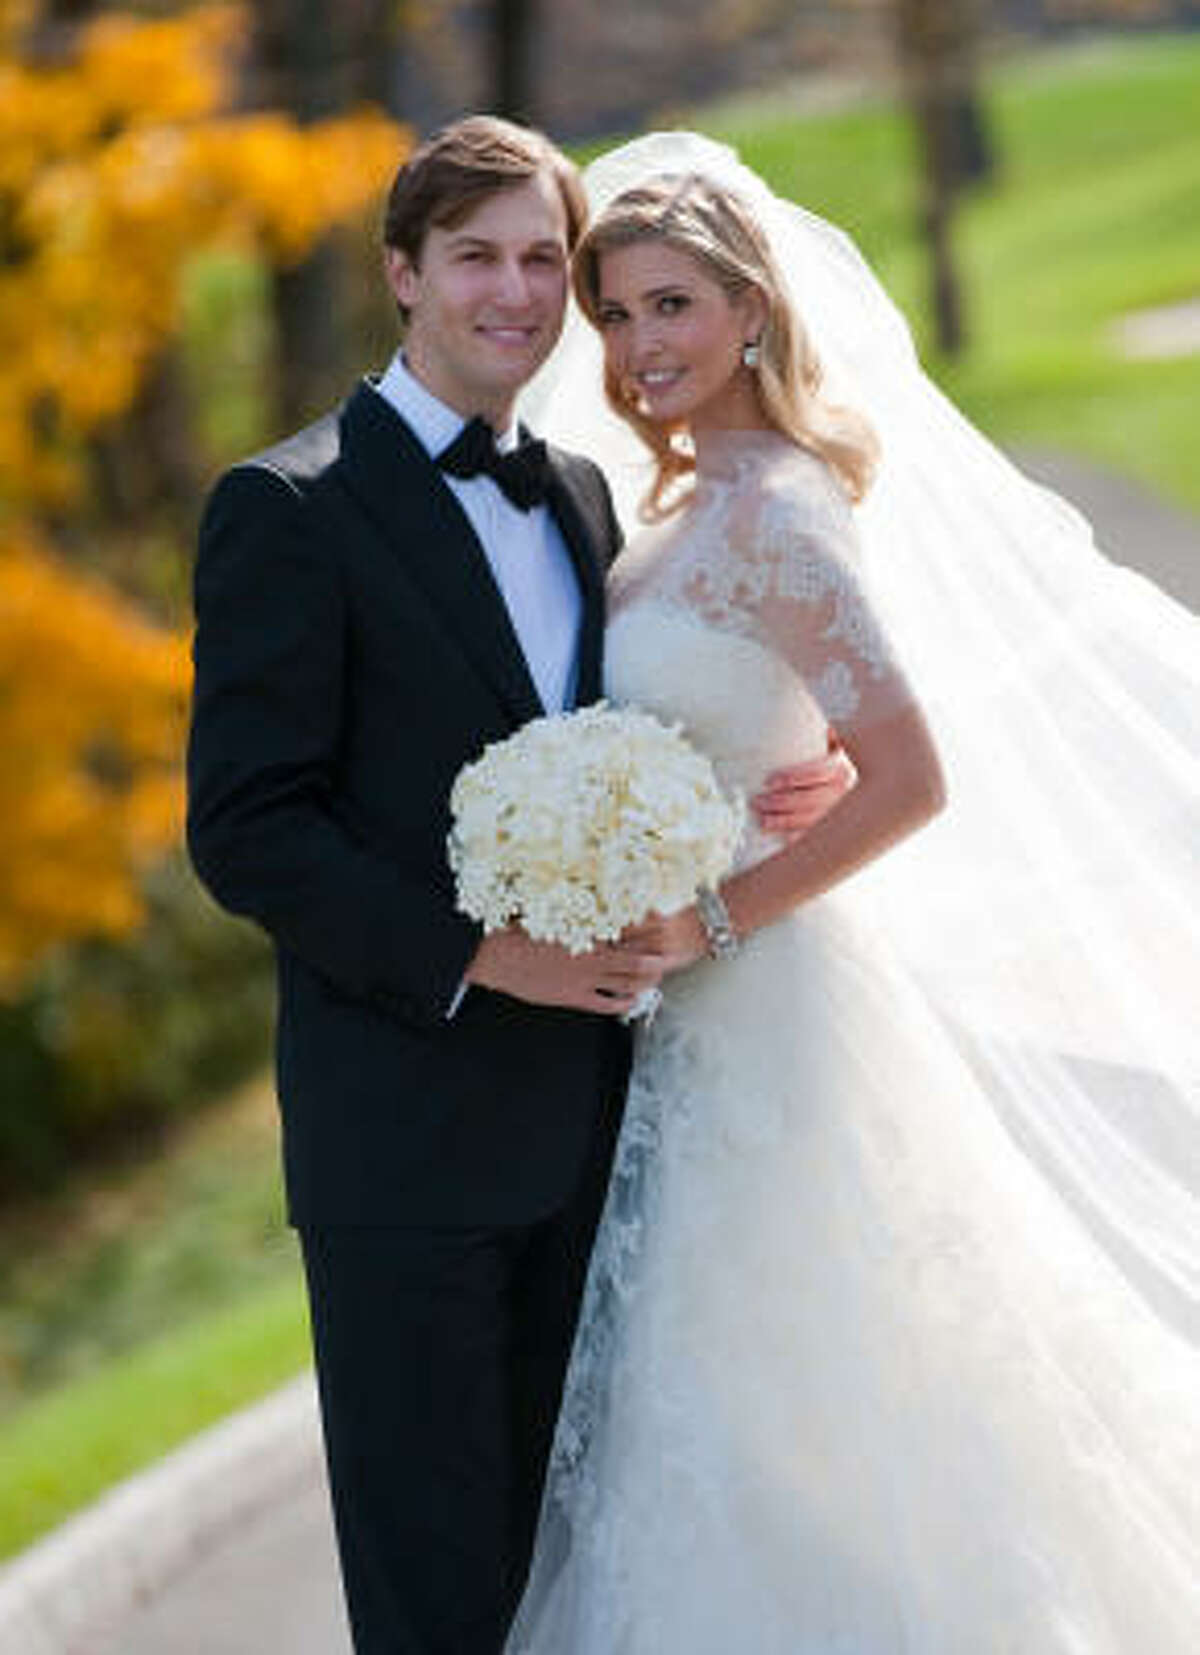 Donald Trump's daughter, Ivanka Trump, decided to use jewelry from her already extensive collection on her big day. Her wedding to Jared Kushner included a 13-layer cake that spanned 70-inches on the table.